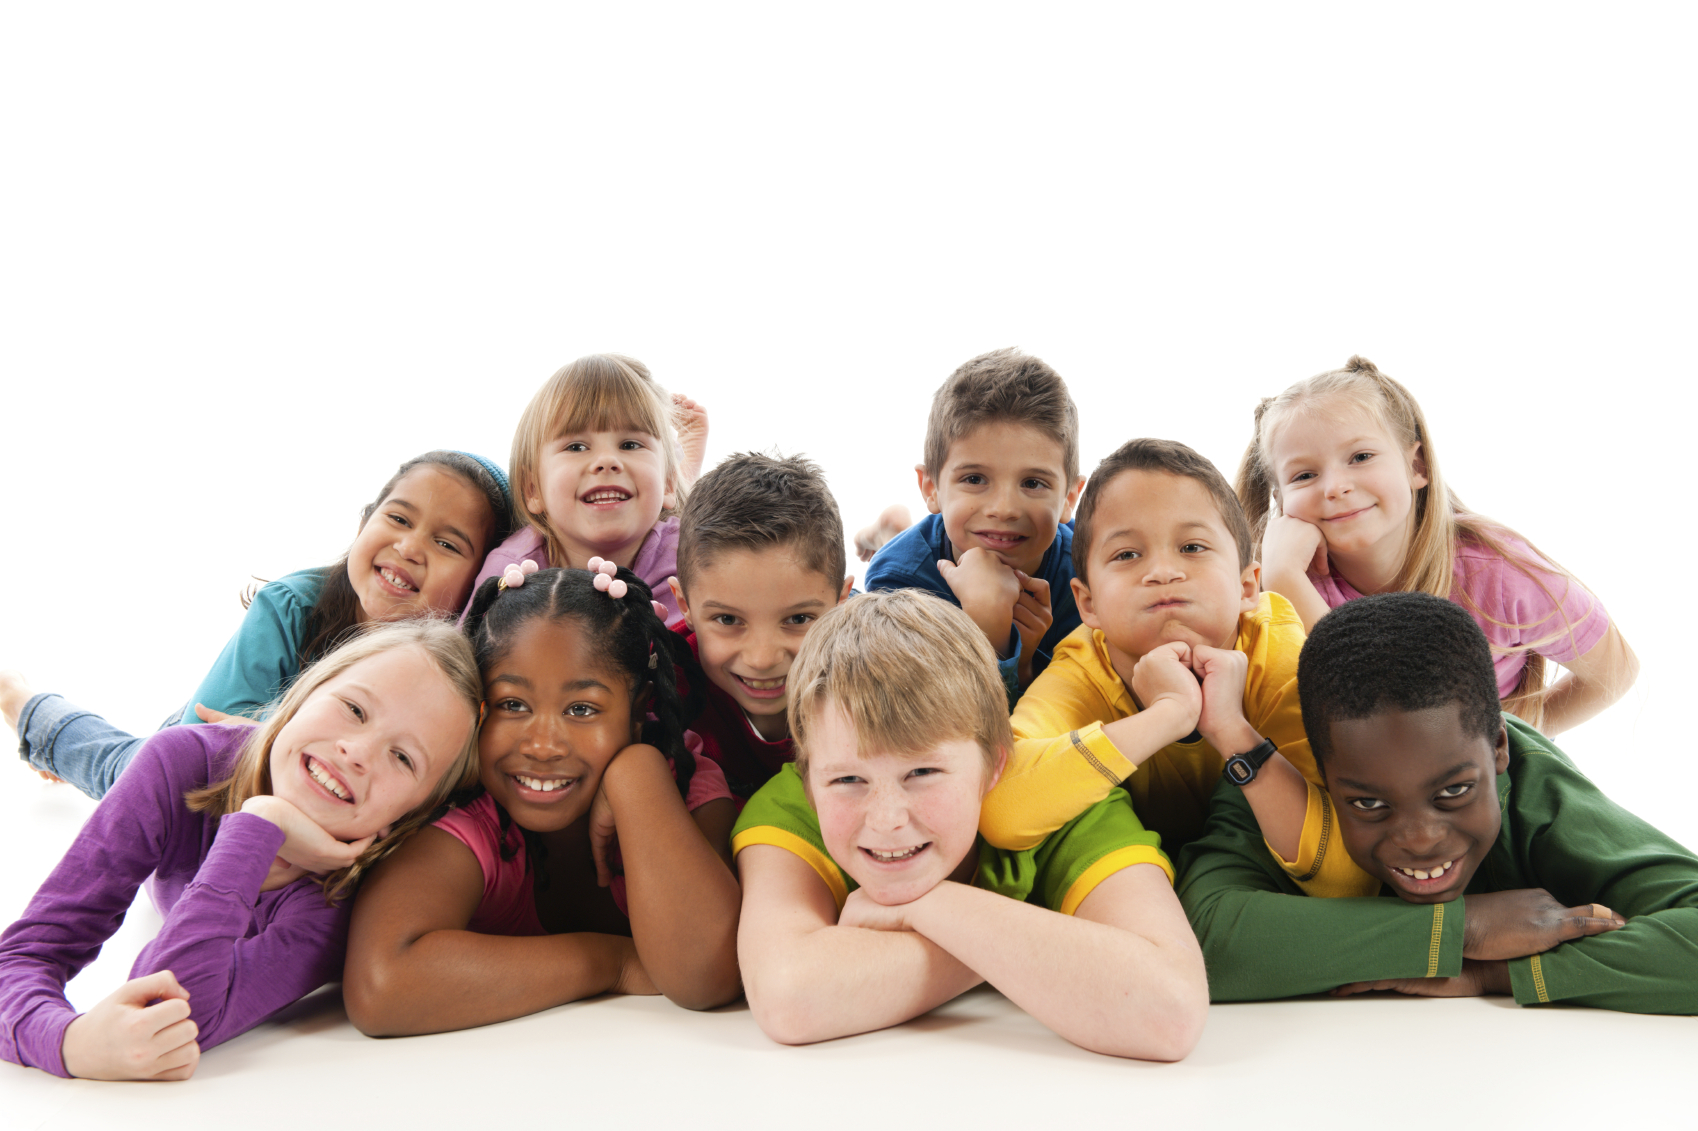 A group of very happy children on a white background.